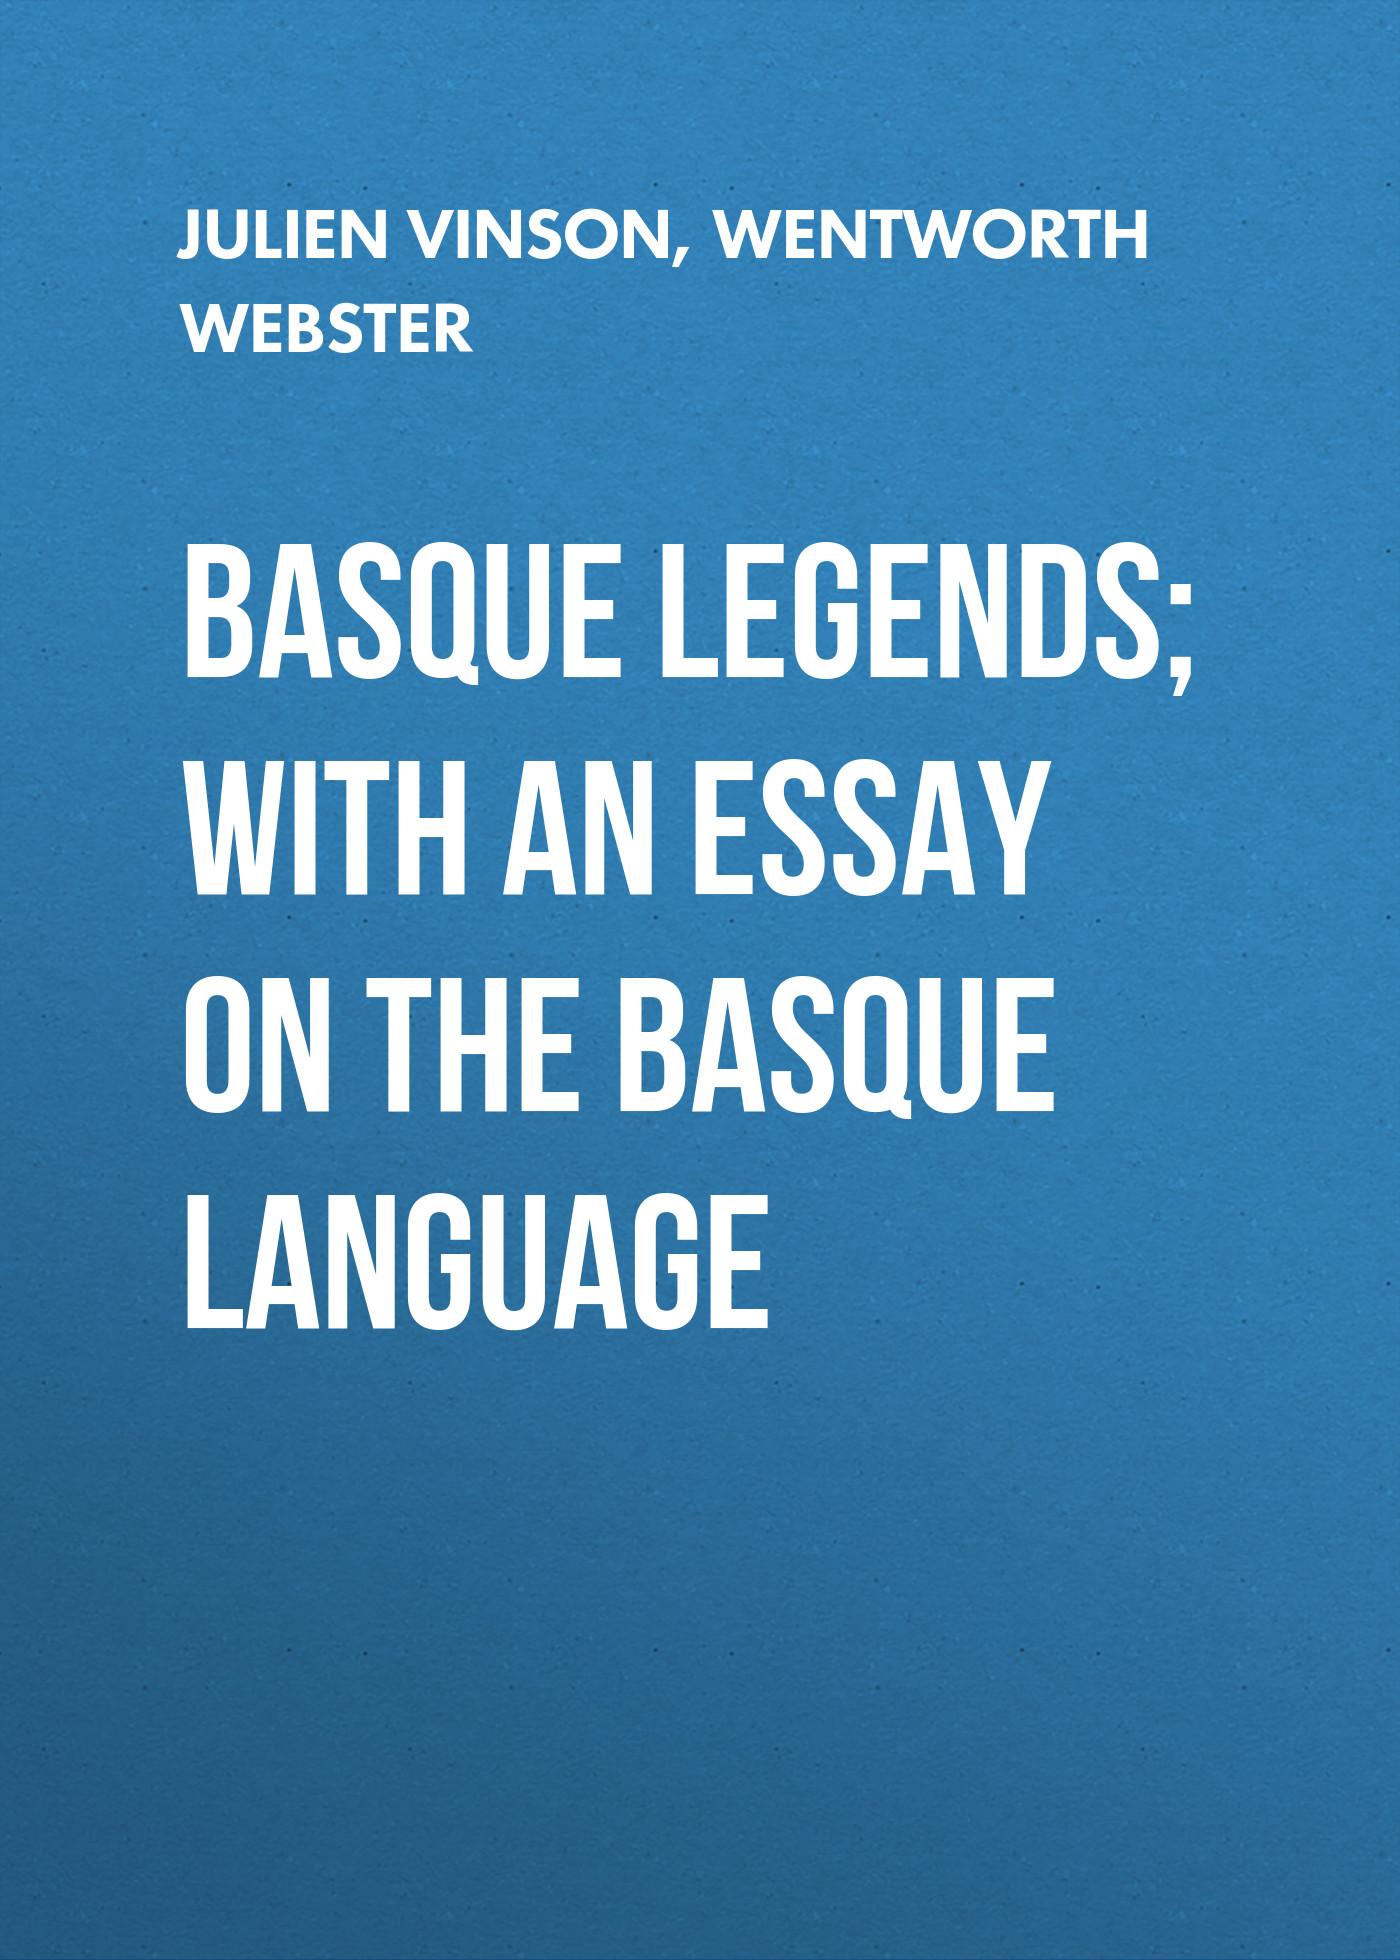 Wentworth Webster Basque Legends; With an Essay on the Basque Language augustus frederic christopher kollmann an essay on musical harmony